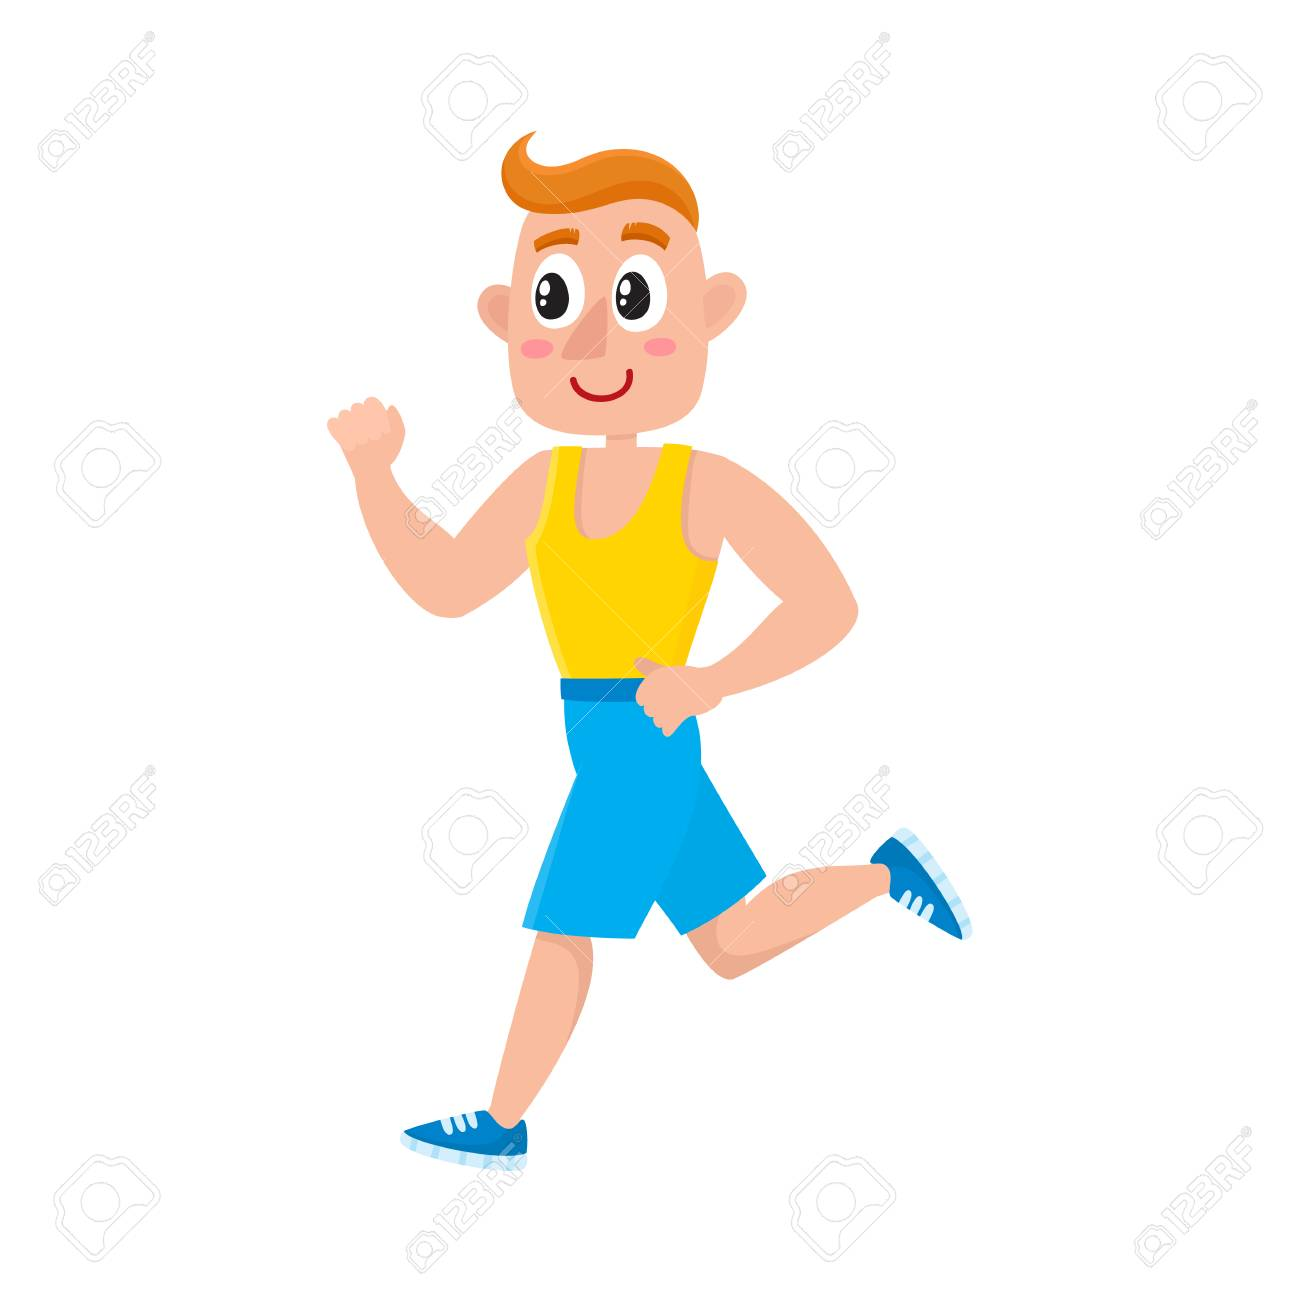 Young Man Running Training In Gym Doing Sport Exercises Cartoon Royalty Free Cliparts Vectors And Stock Illustration Image 81809588